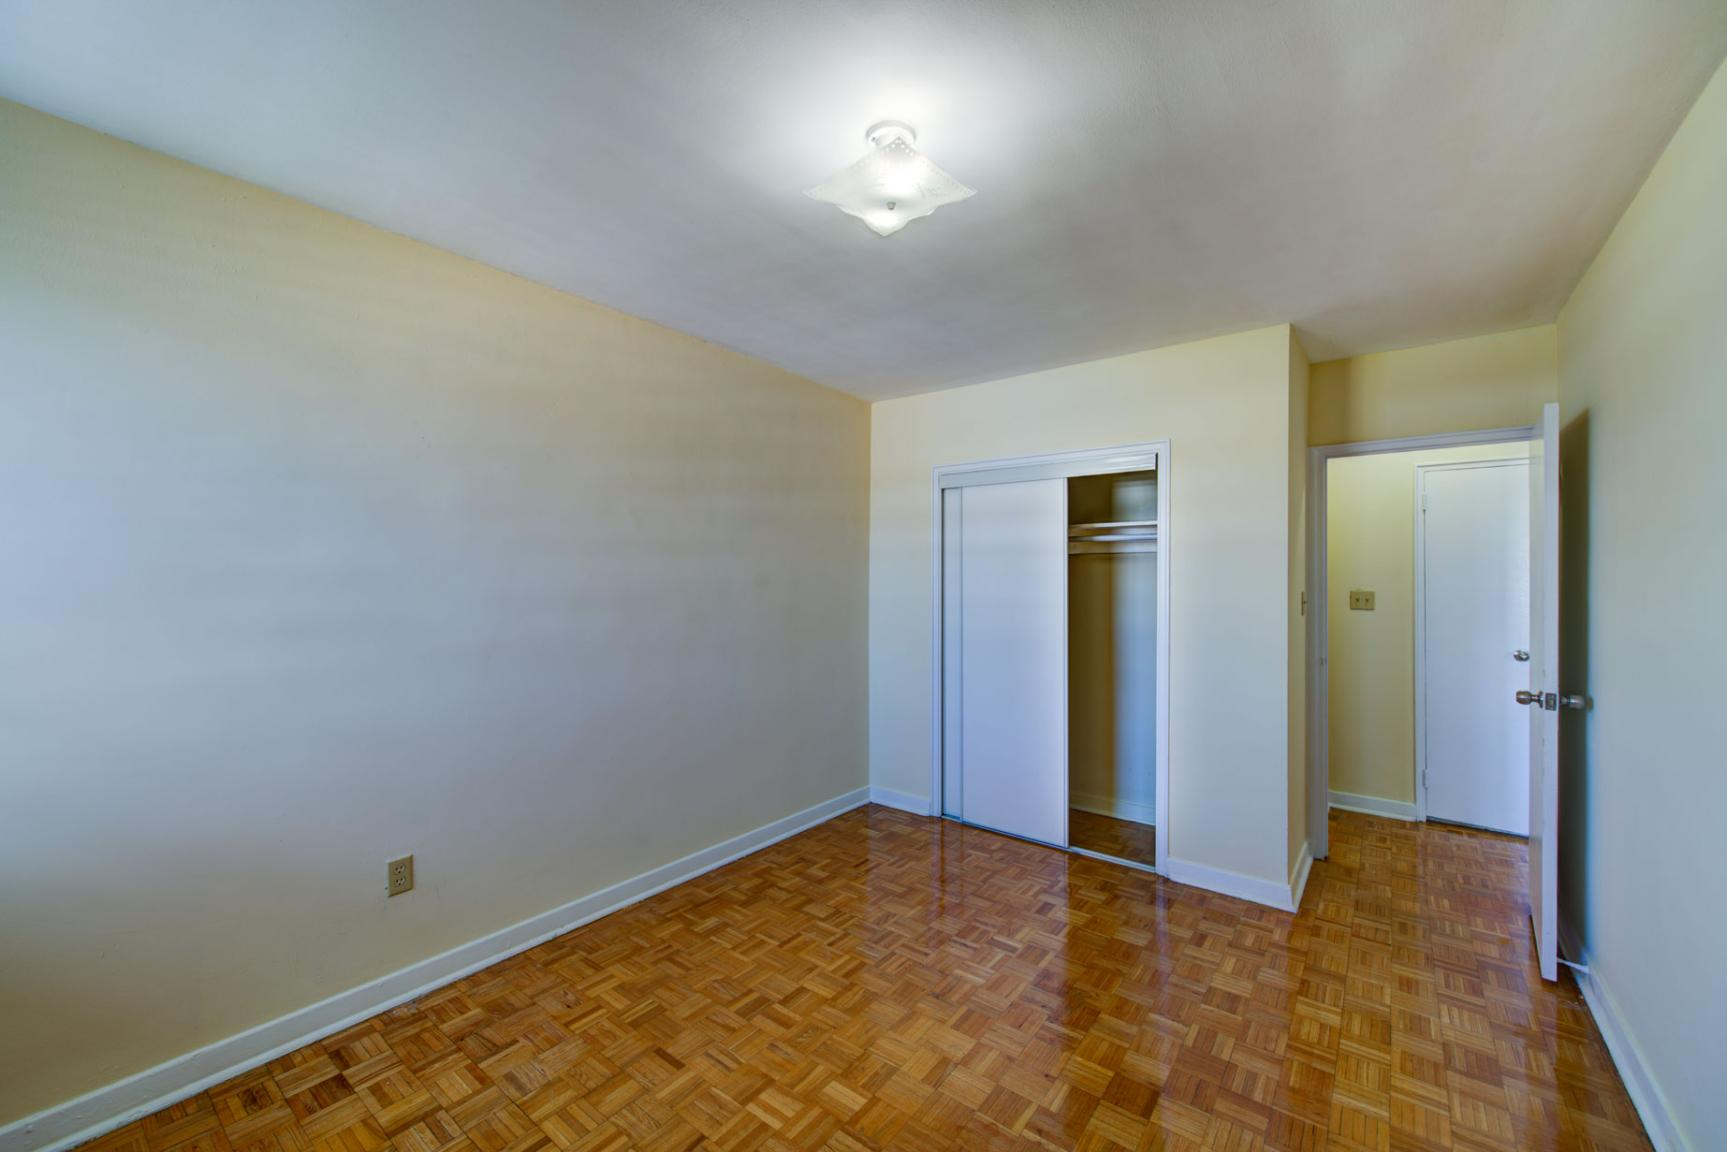 Studio / Bachelor Apartments for rent in Etobicoke at Lake Promenade Community - Photo 20 - RentersPages – L168089